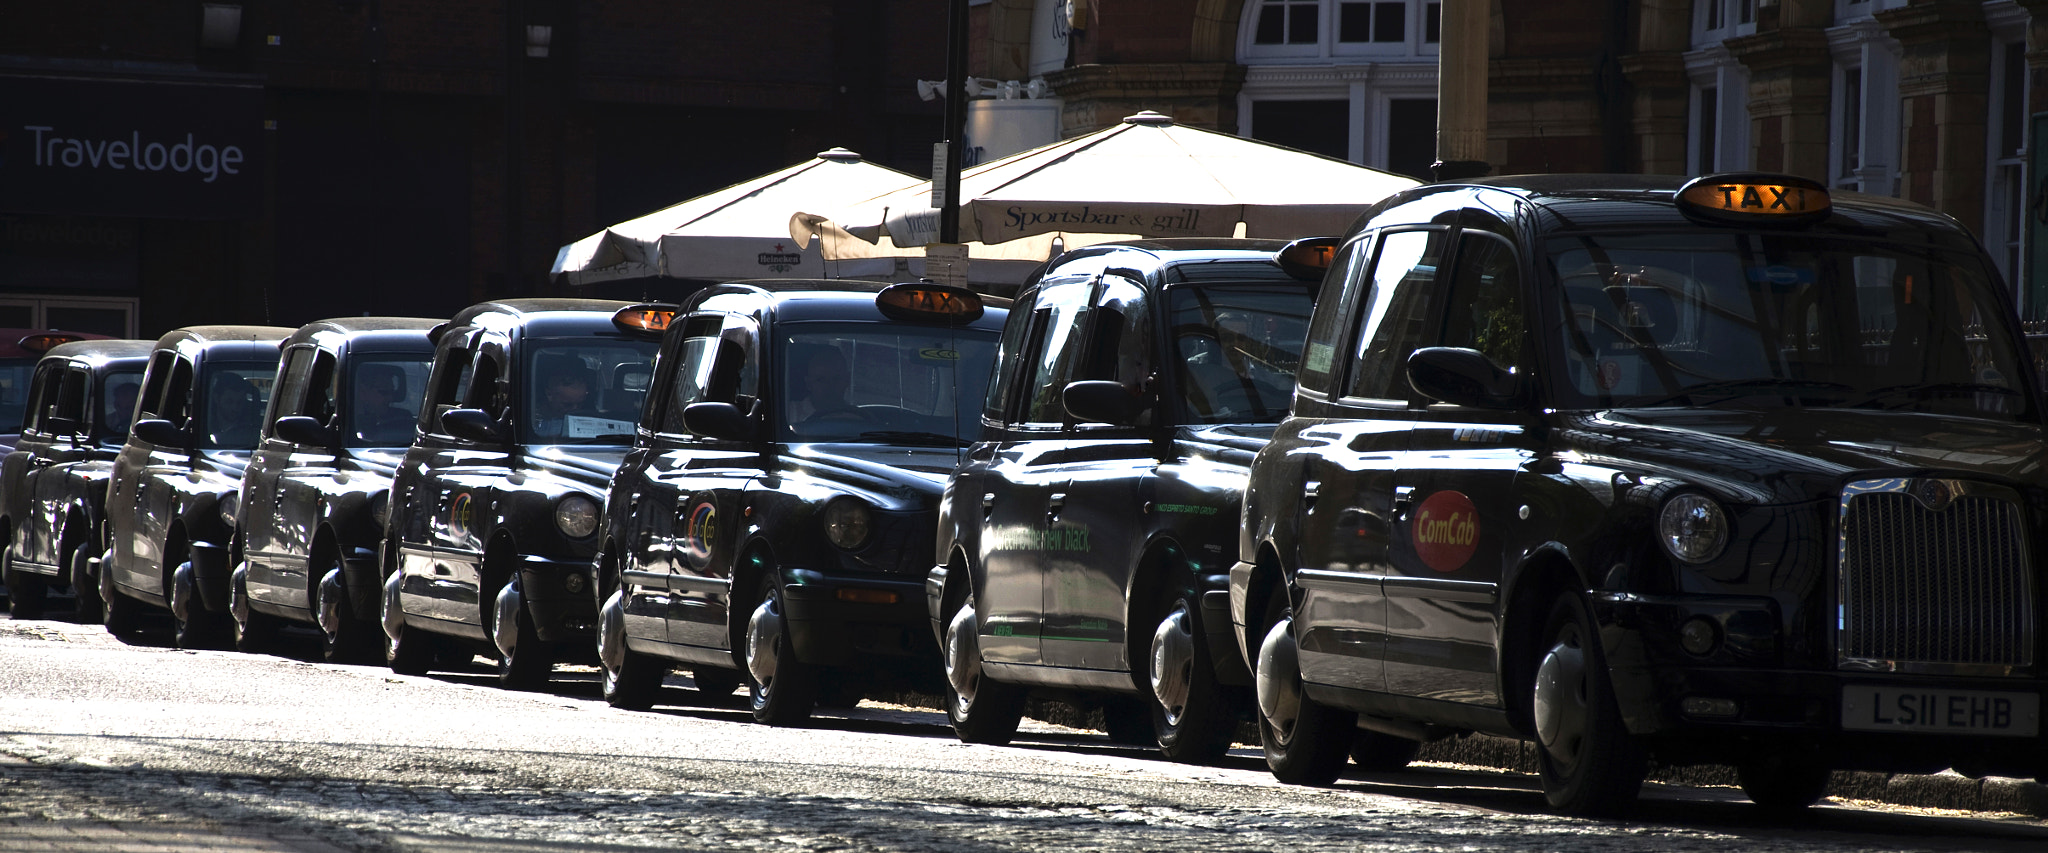 Photograph Taxi queue by Marco Dall'Omo on 500px